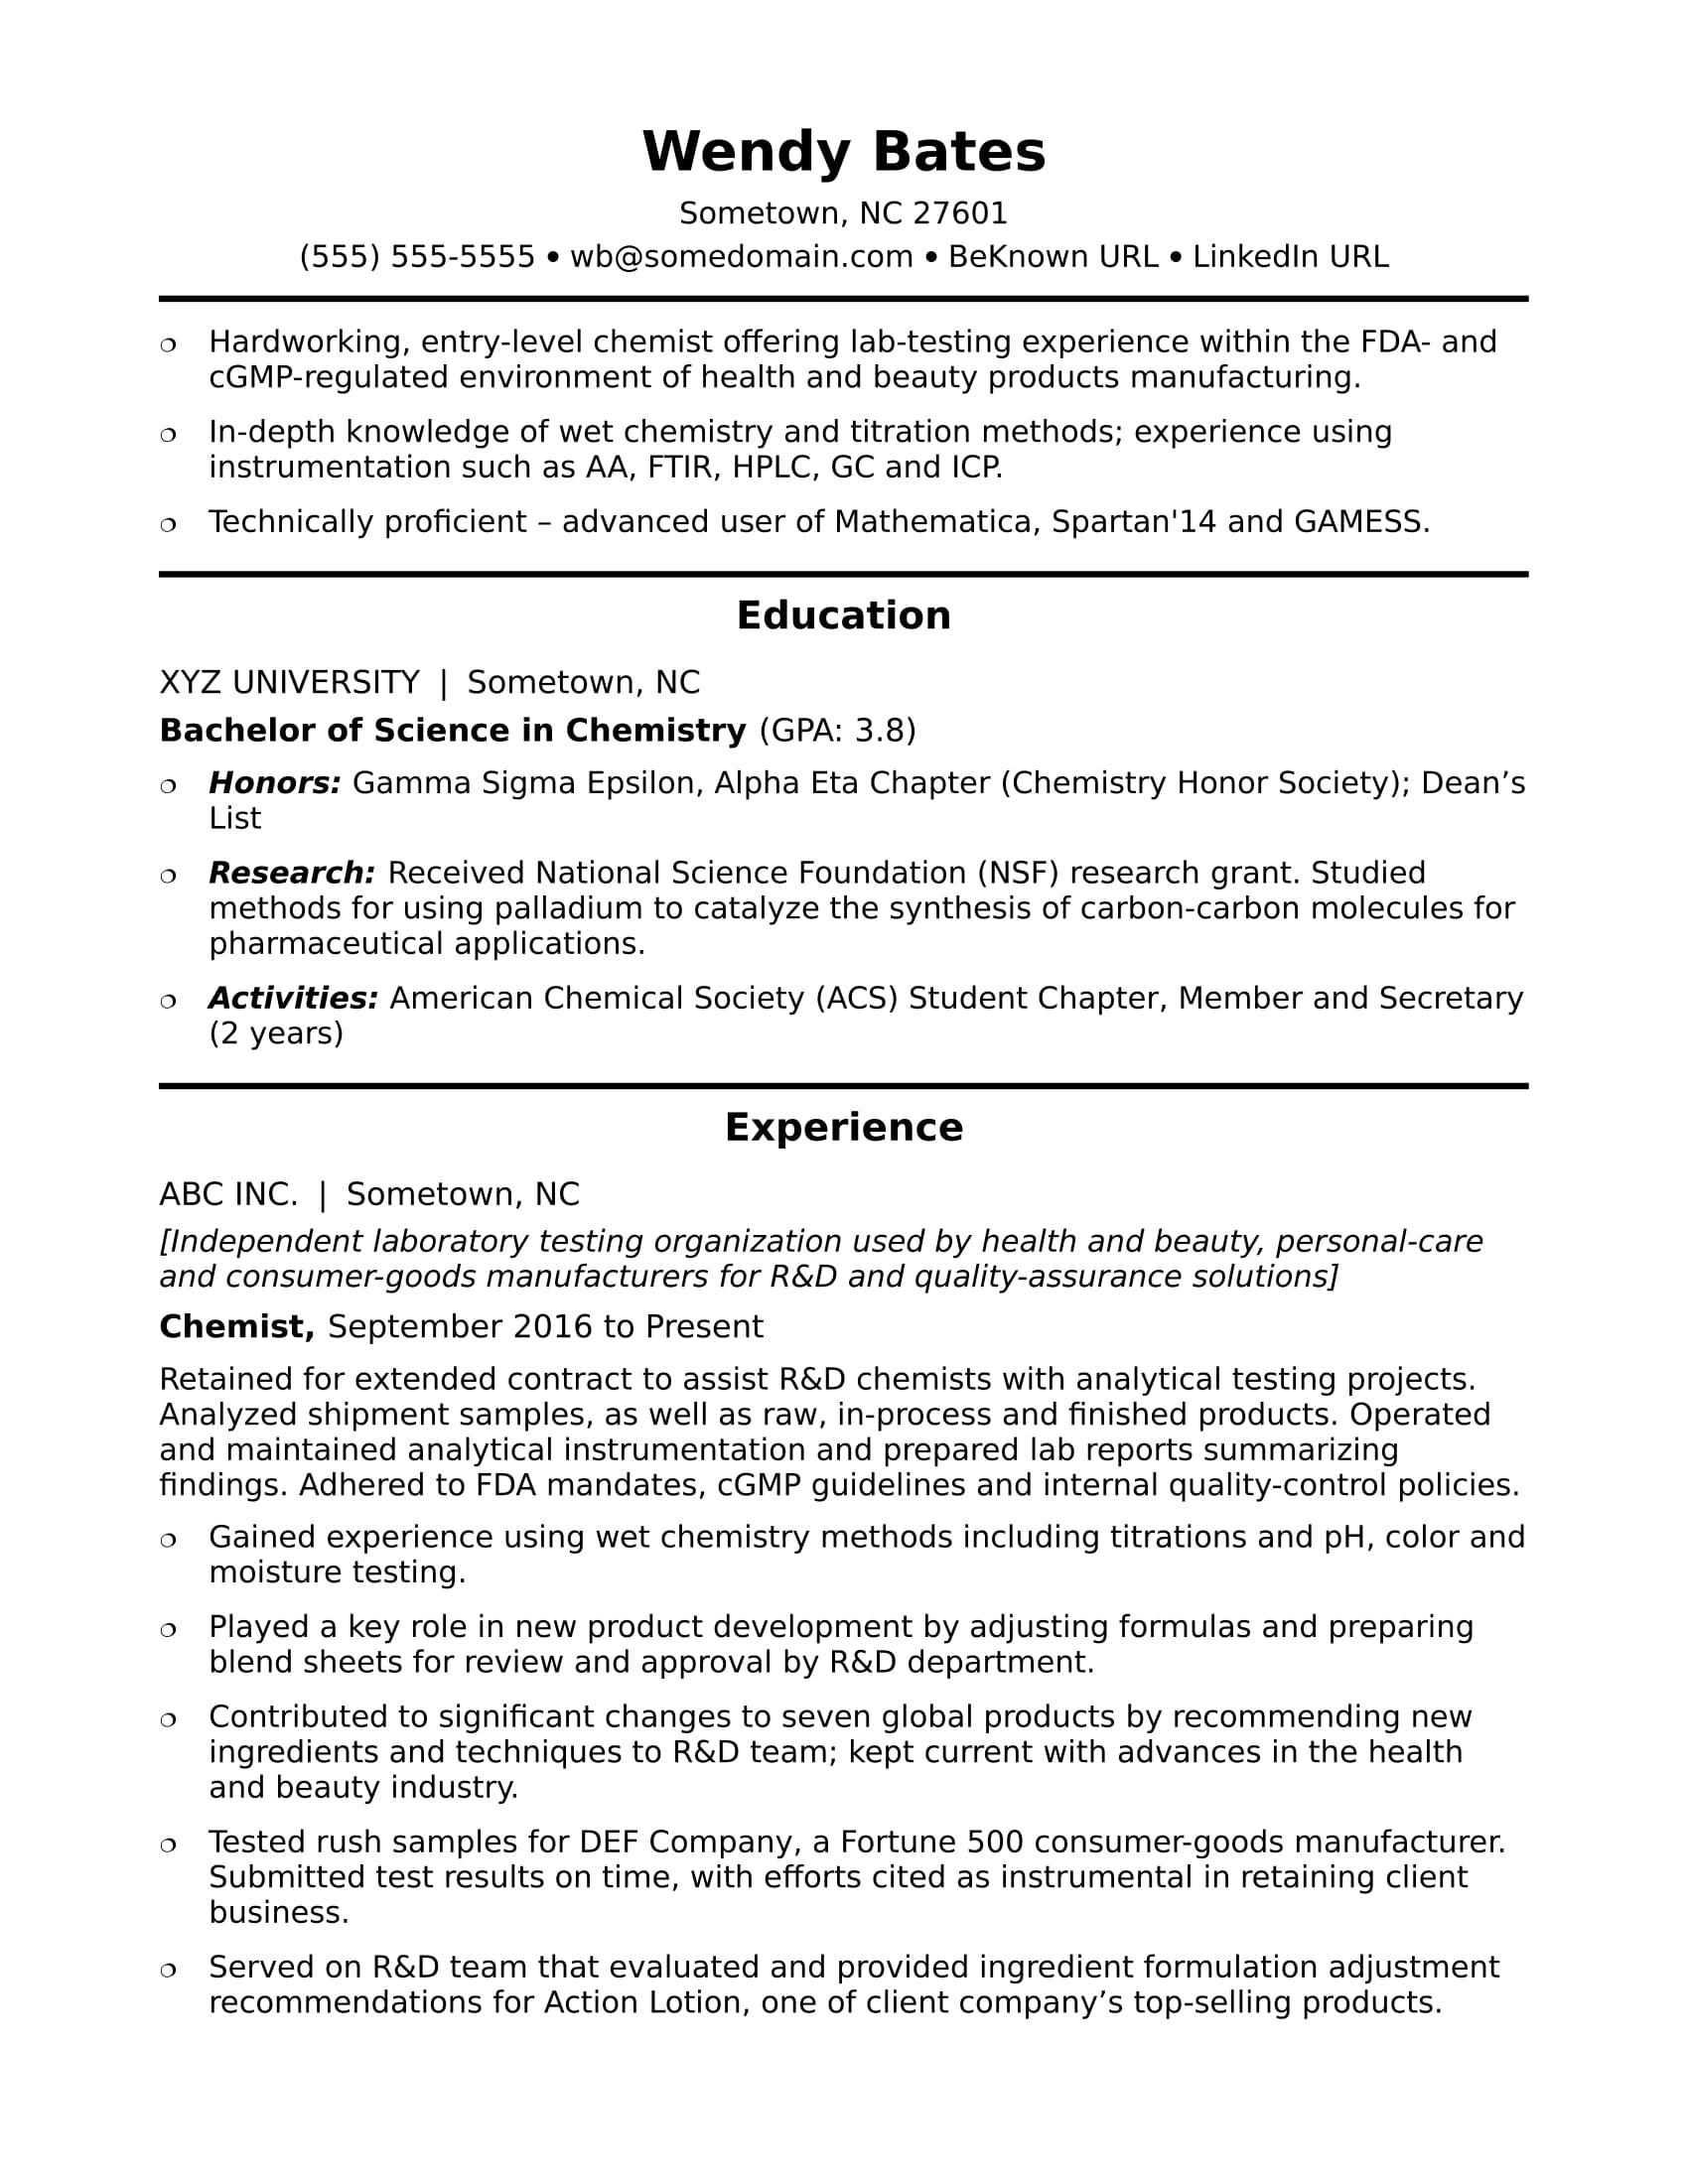 Captivating Sample Resume For An Entry Level Chemist In Chemist Resume